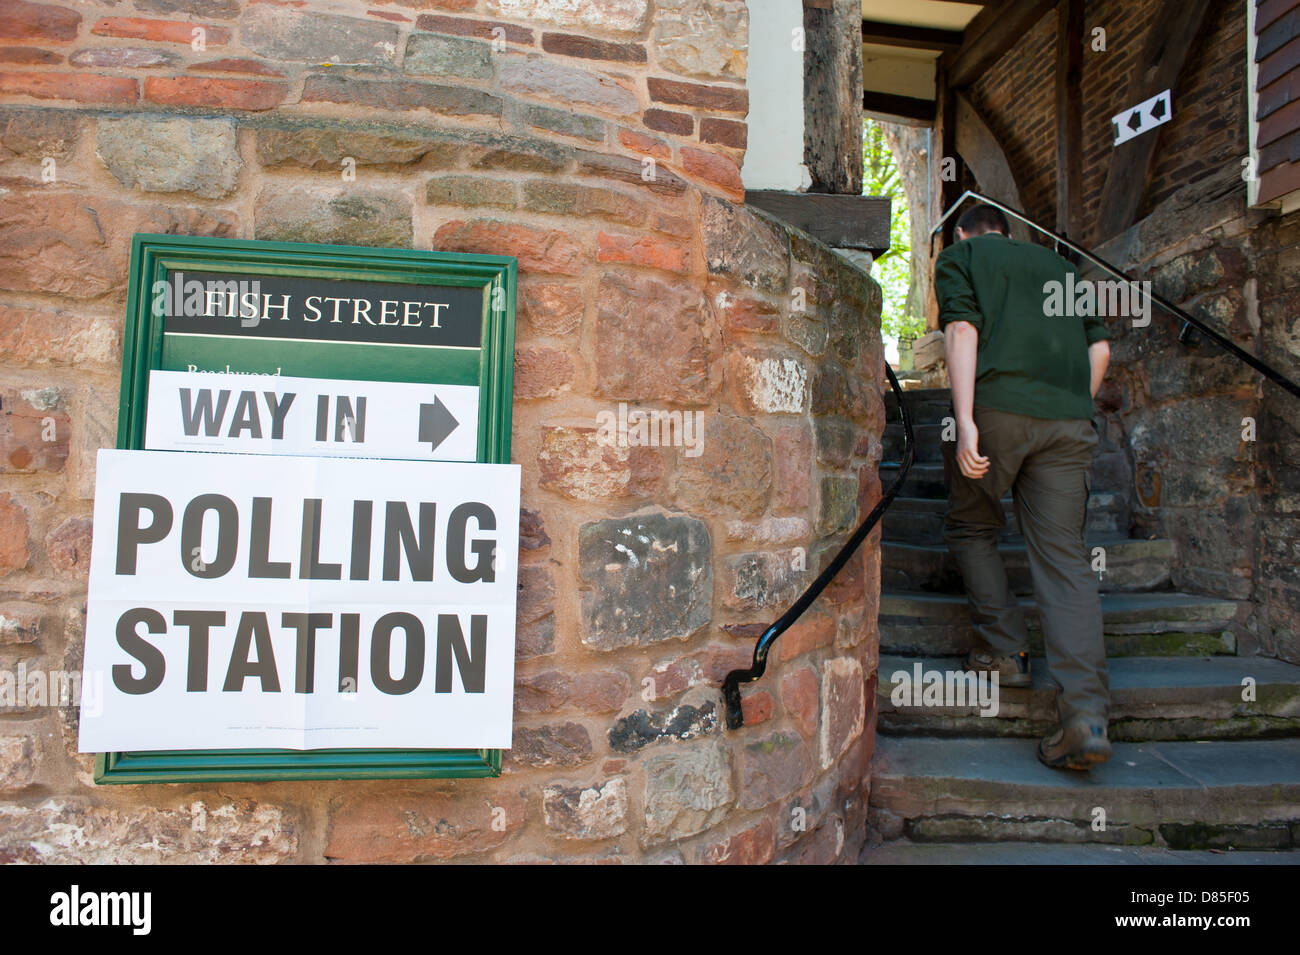 A man entering a polling station in Shrewsbury, Shropshire, England. - Stock Image